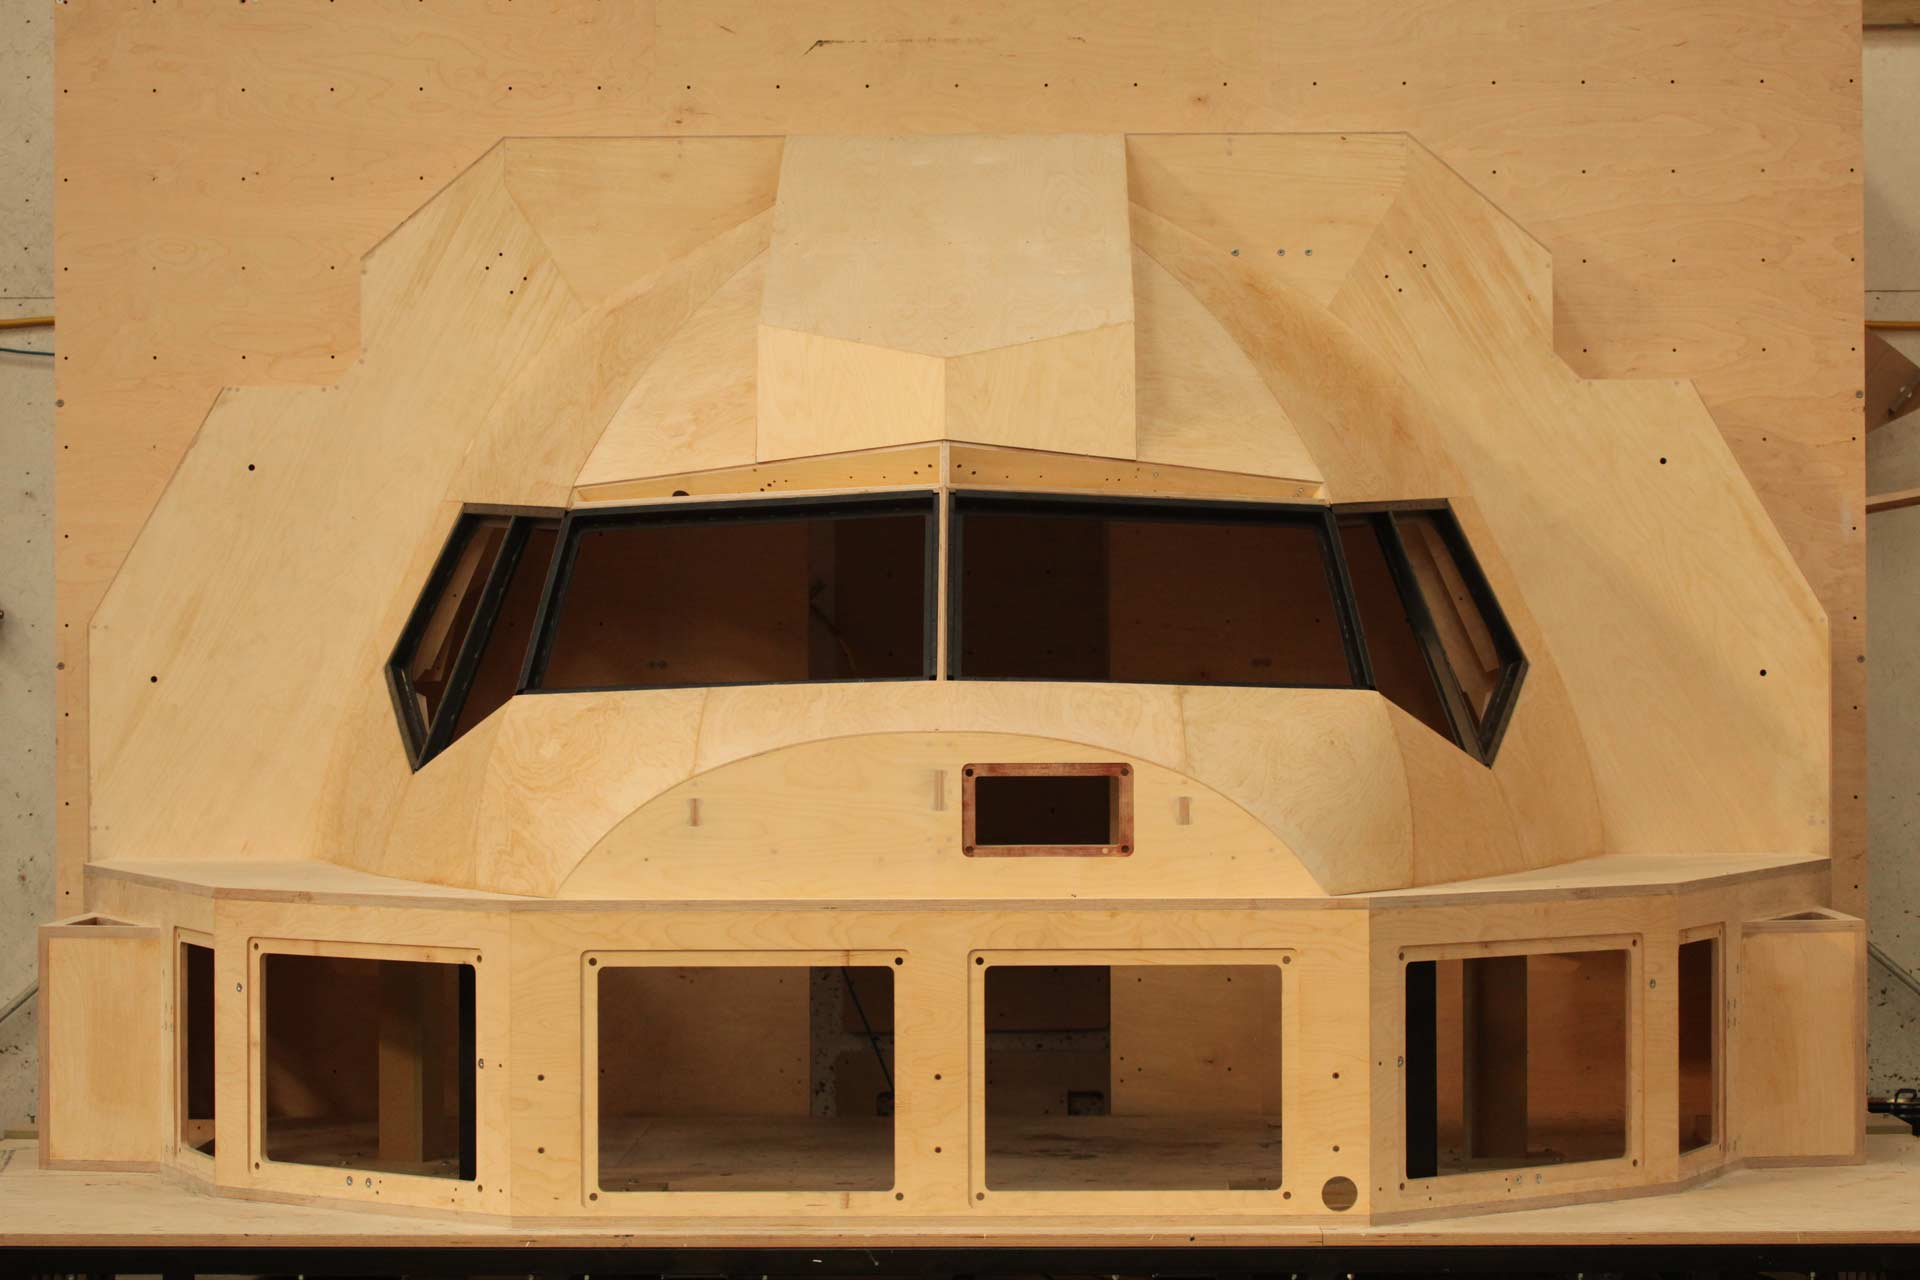 A full scale flight simulator cockpit, precision machined from plywood